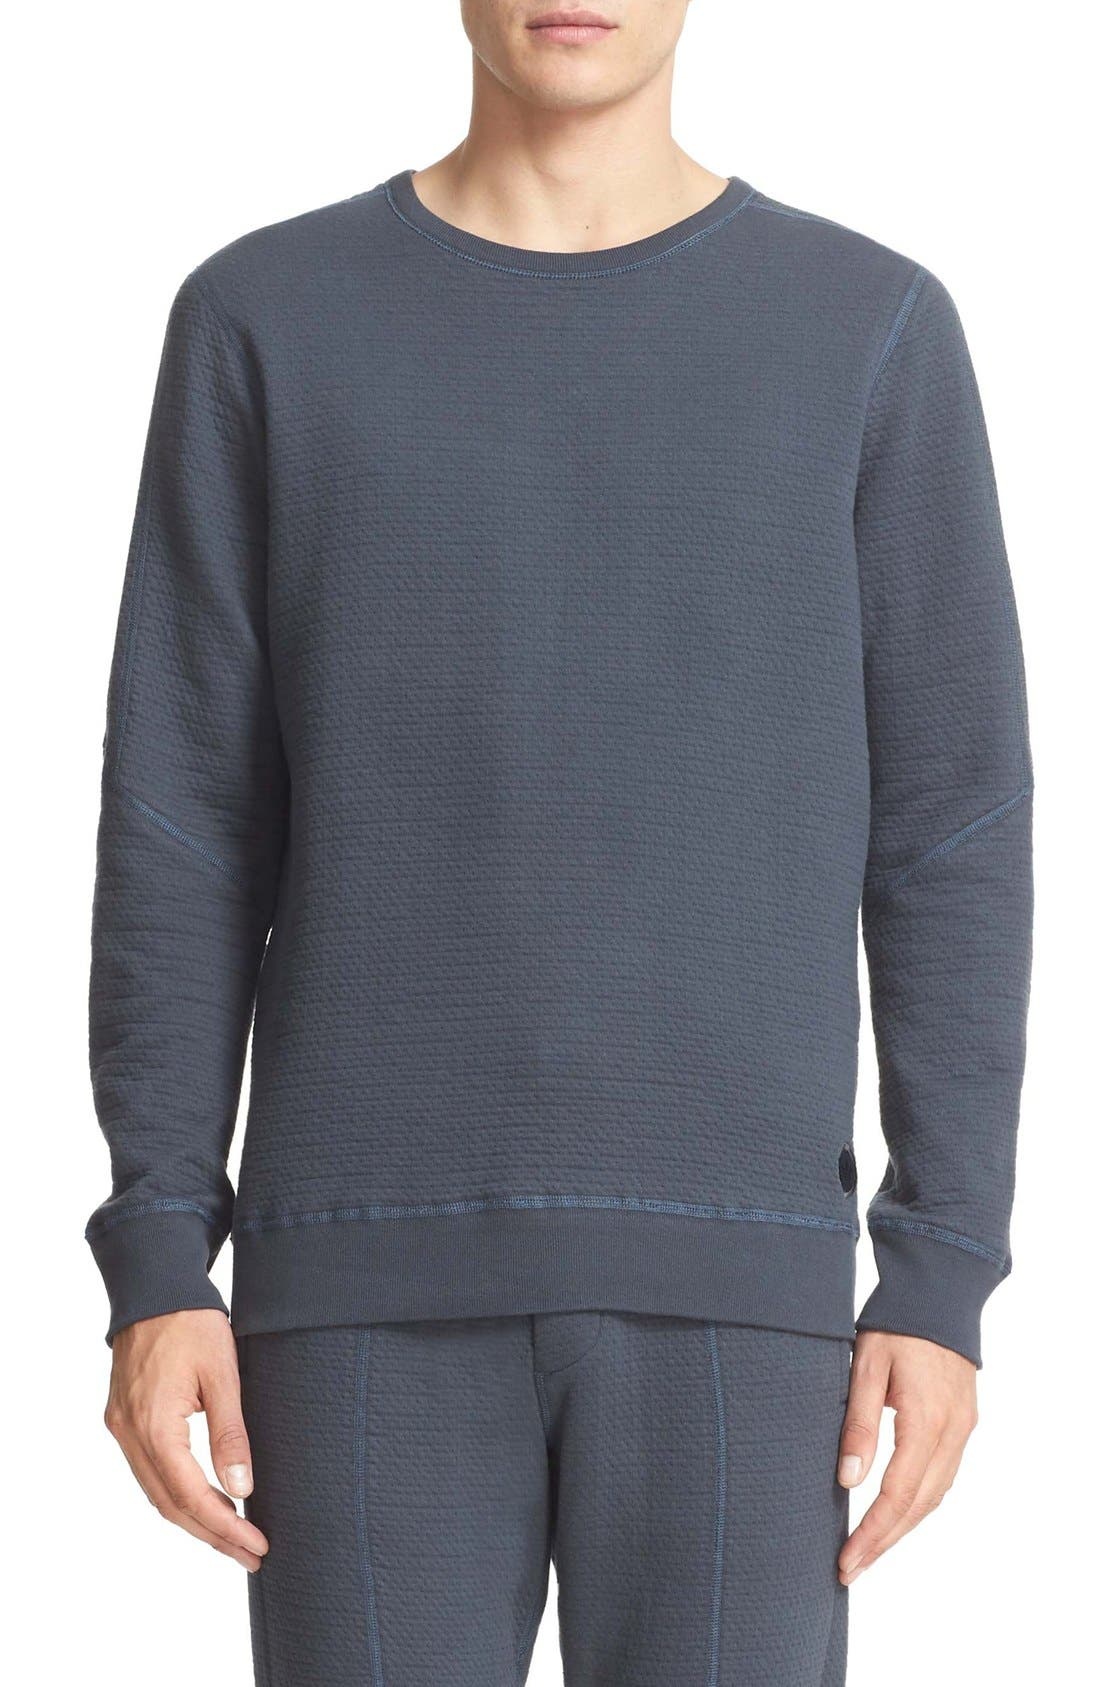 wings + horns x adidas Cabin Fleece Crewneck Sweatshirt